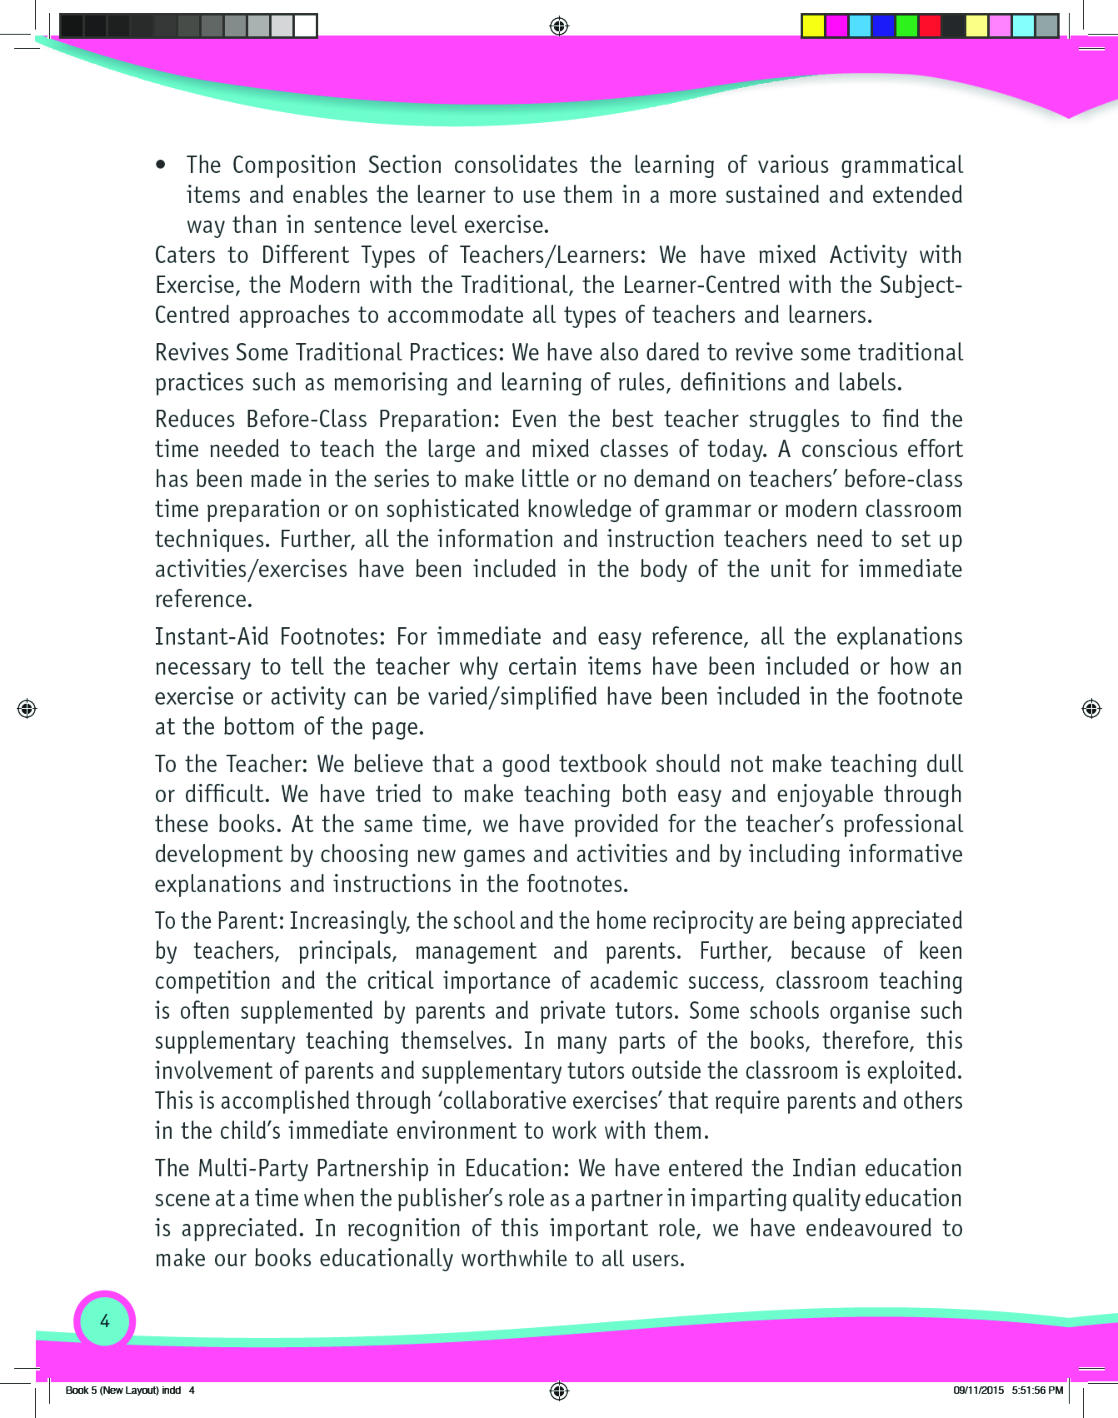 Elementary Grammar And Composition - 5 - Page 5